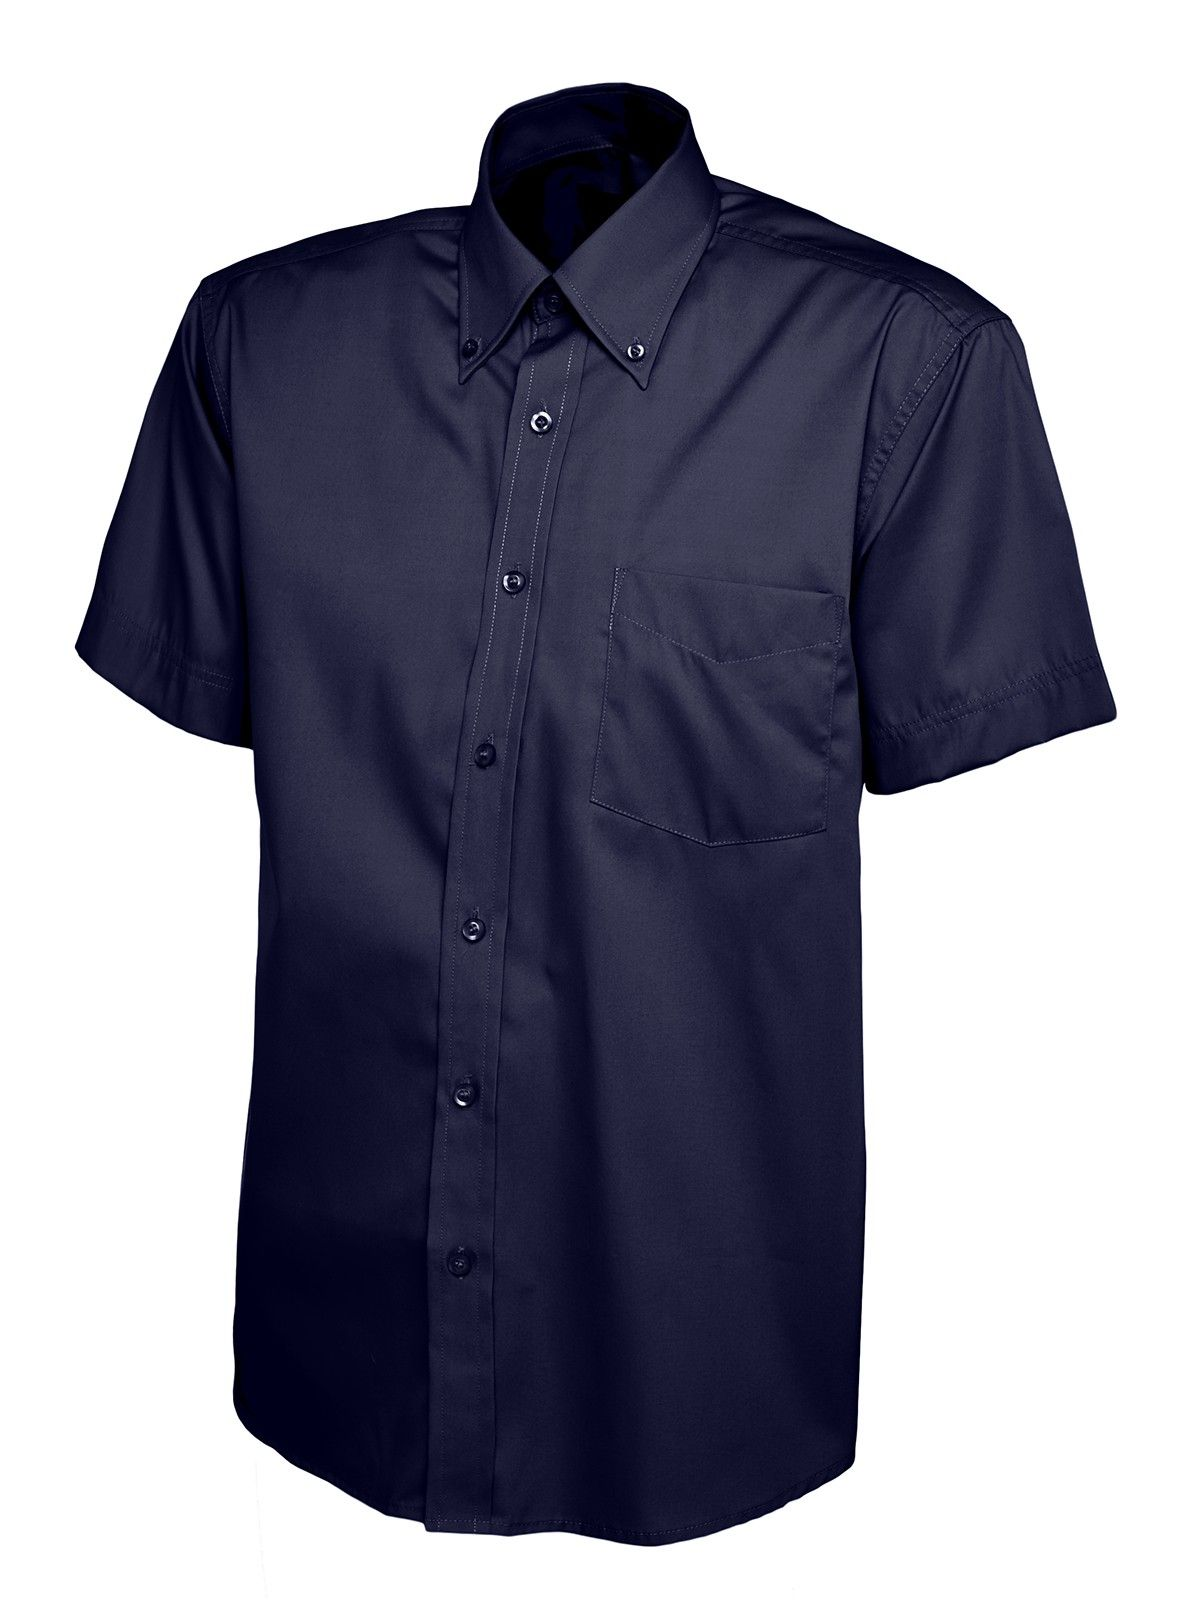 Embroidered Mens Oxford Short Sleeve Shirt